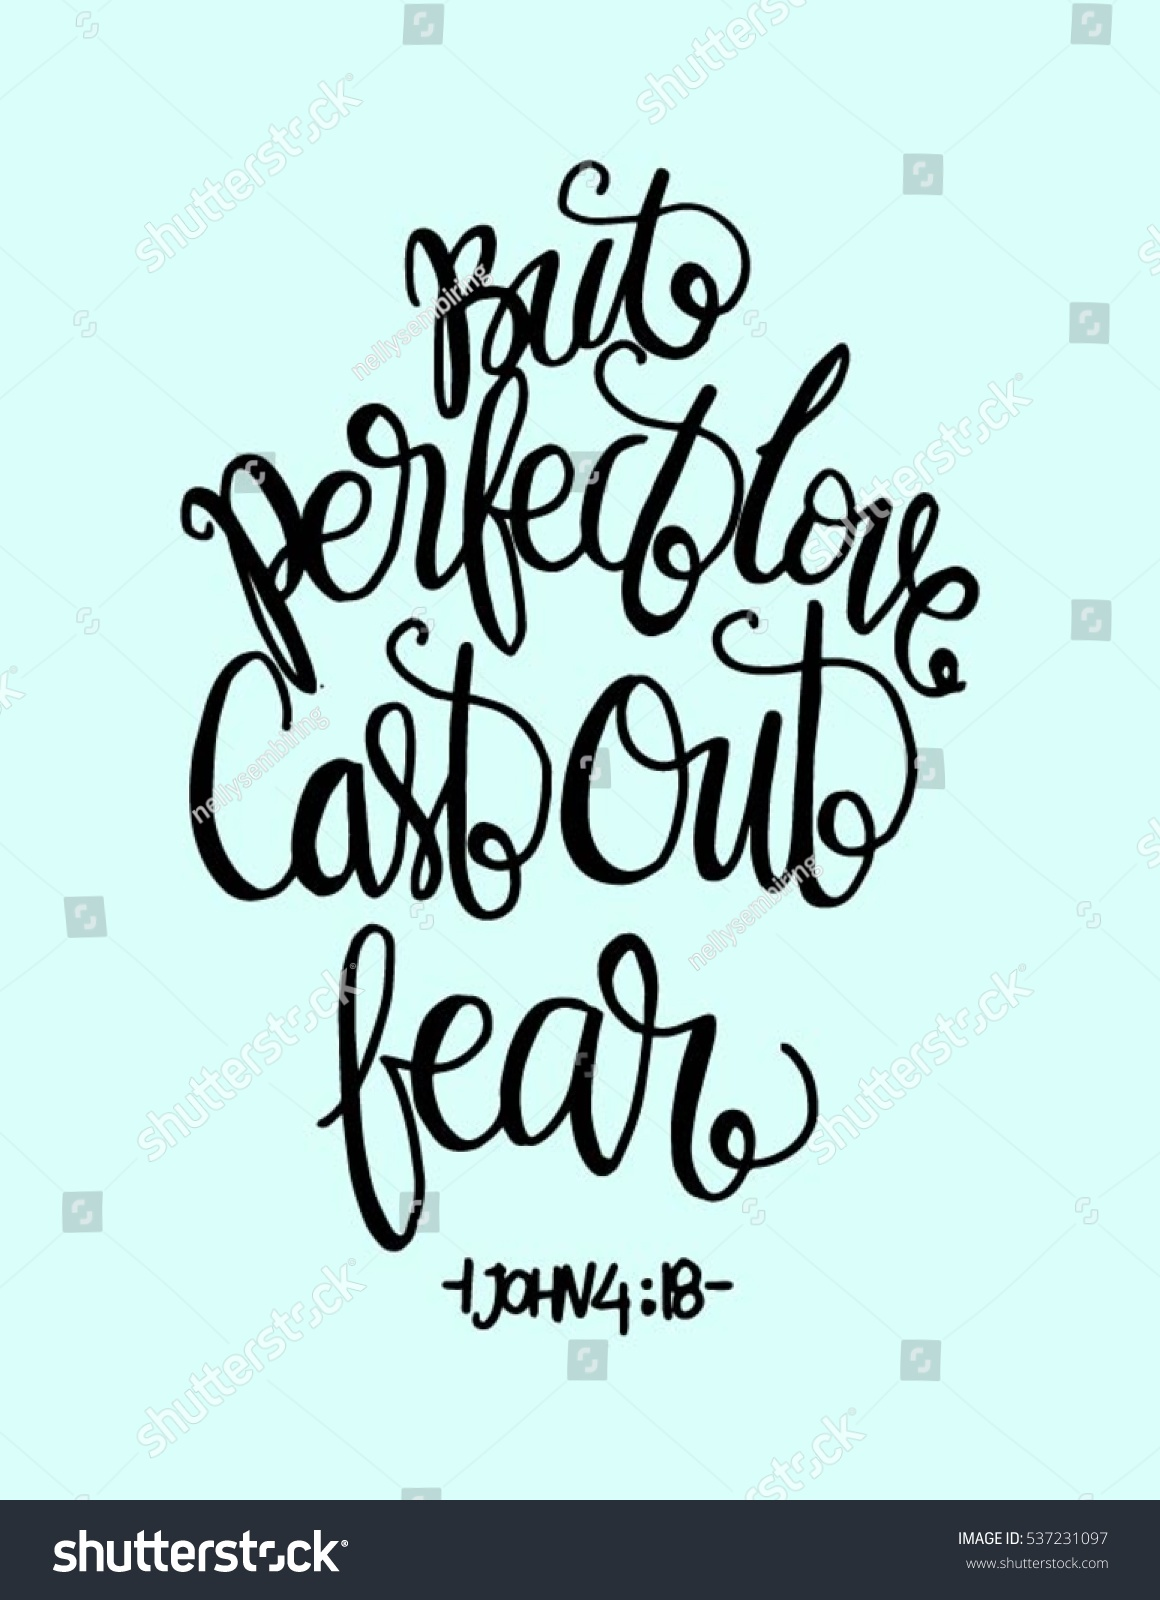 But perfect love cast out fear bible verse hand lettered